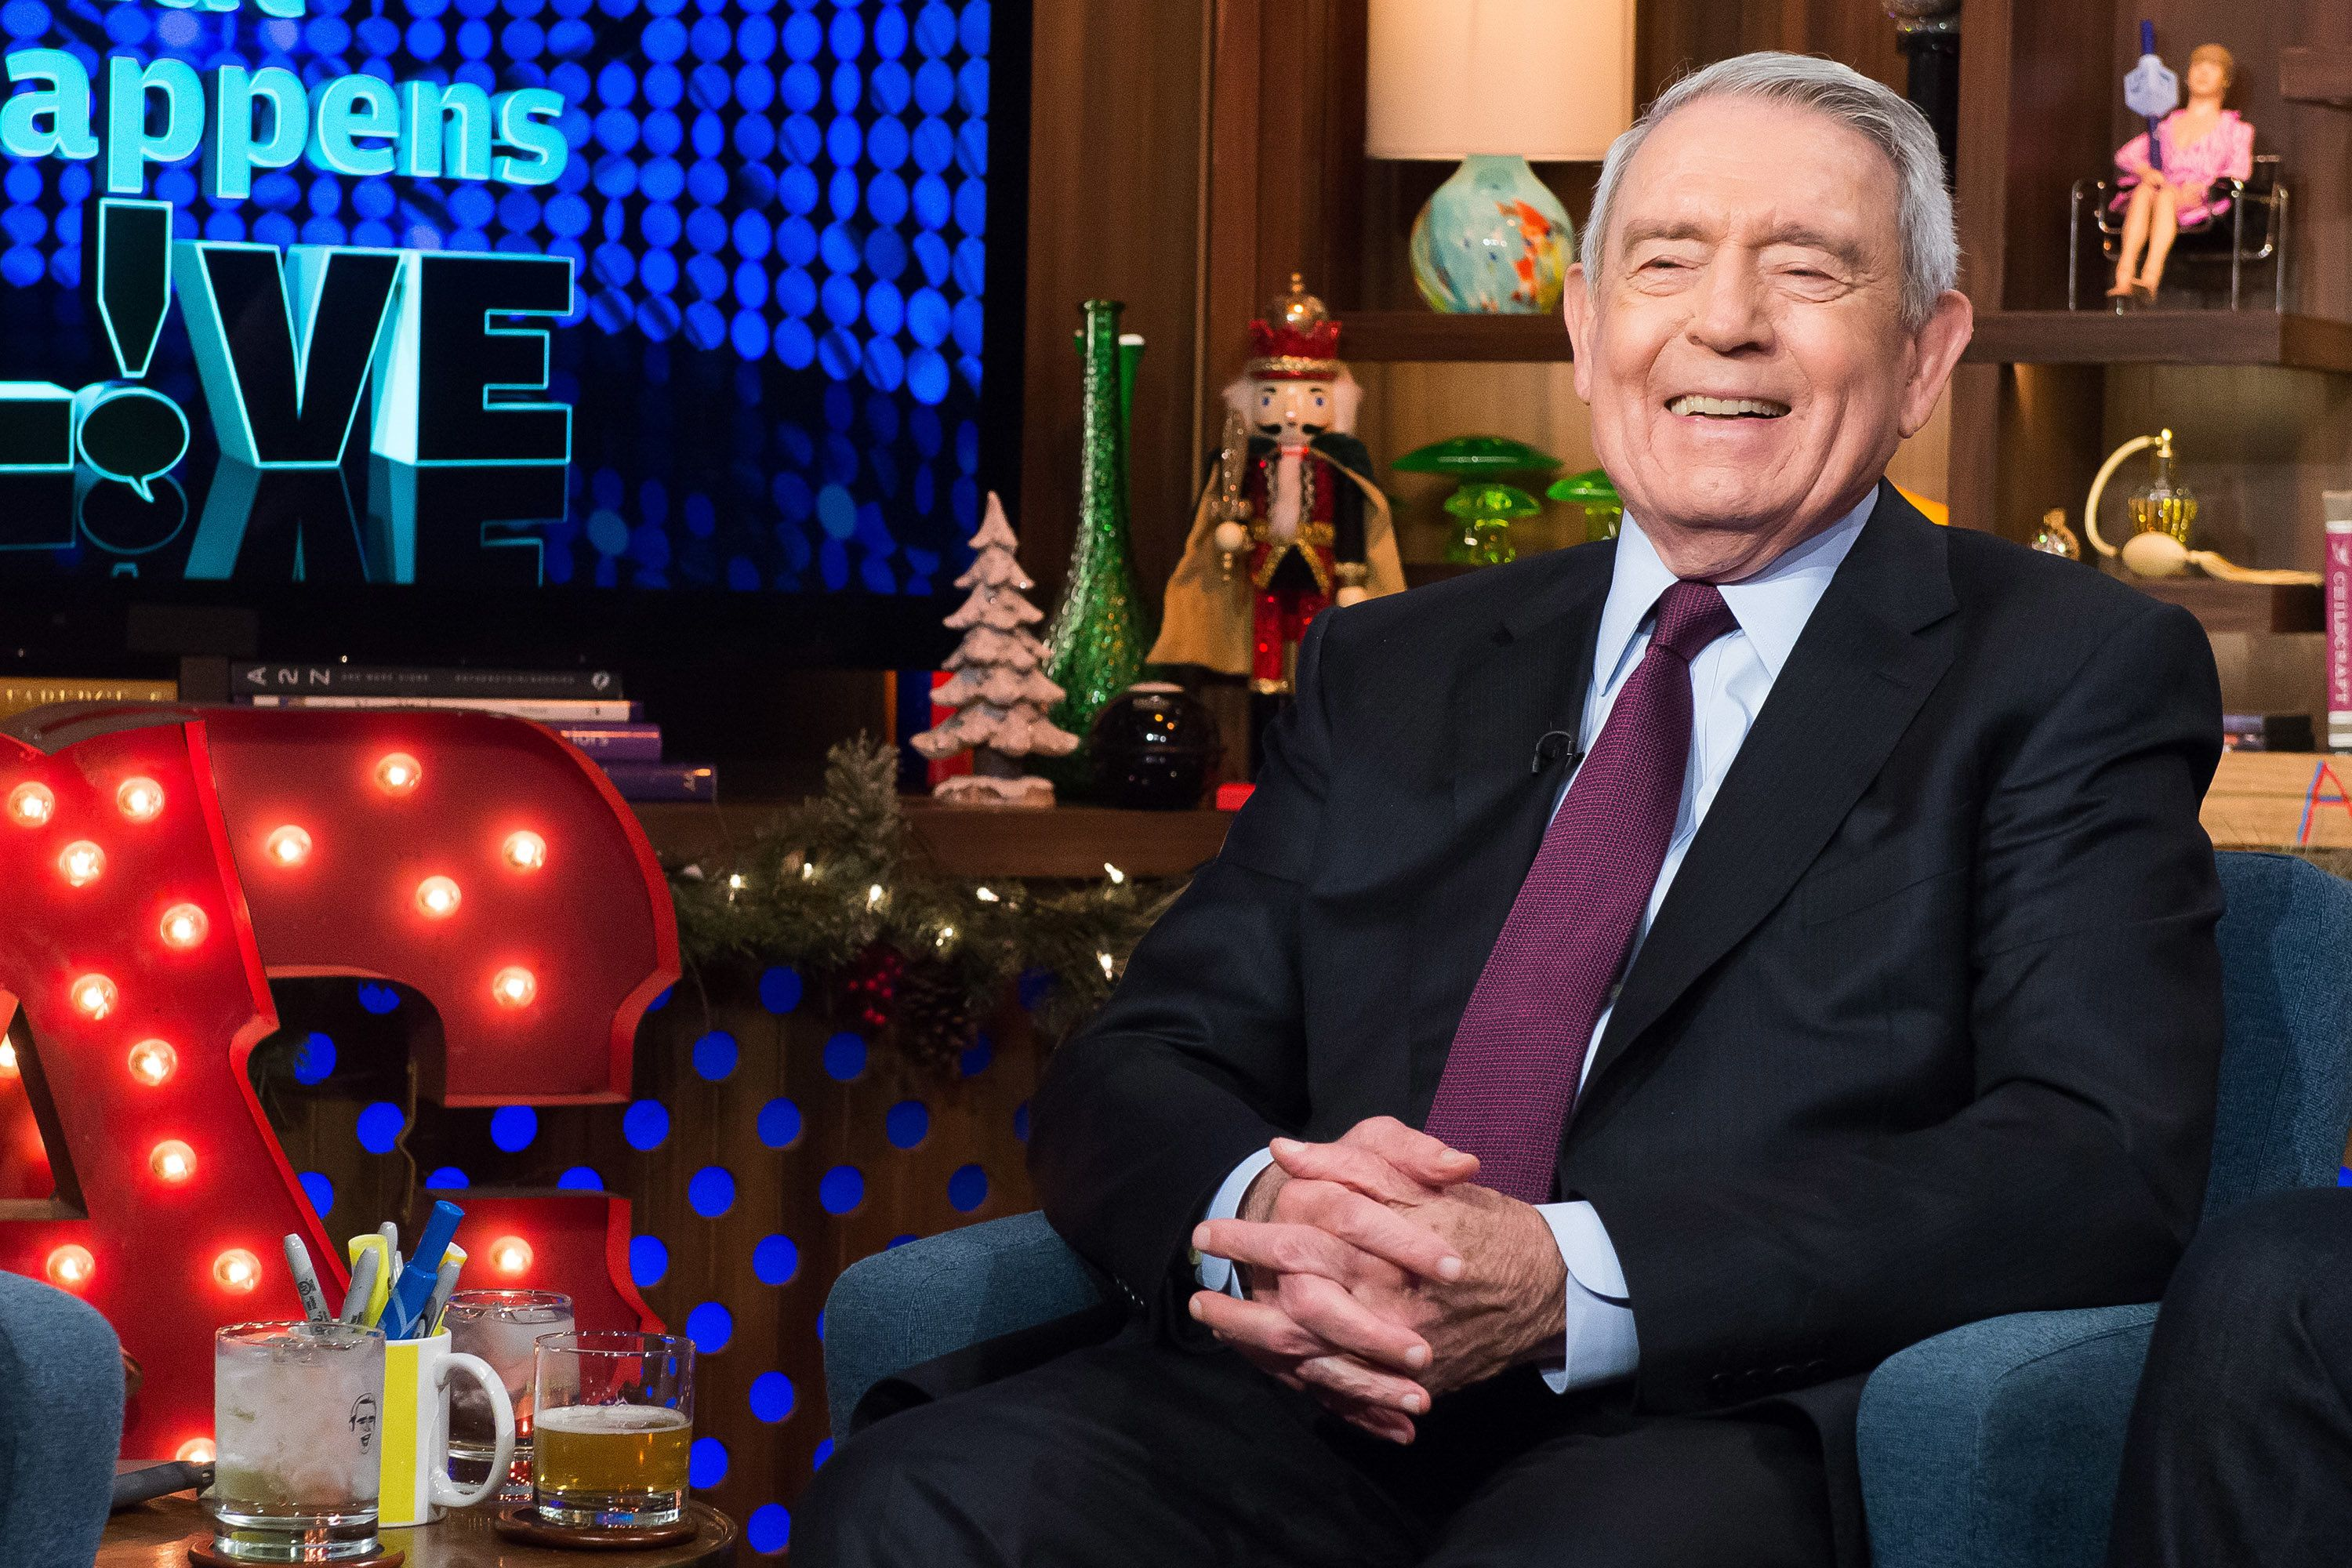 Dan Rather's decades-long career continues well into his 80s. He is enjoying something of a renaissance since the 2016 electi